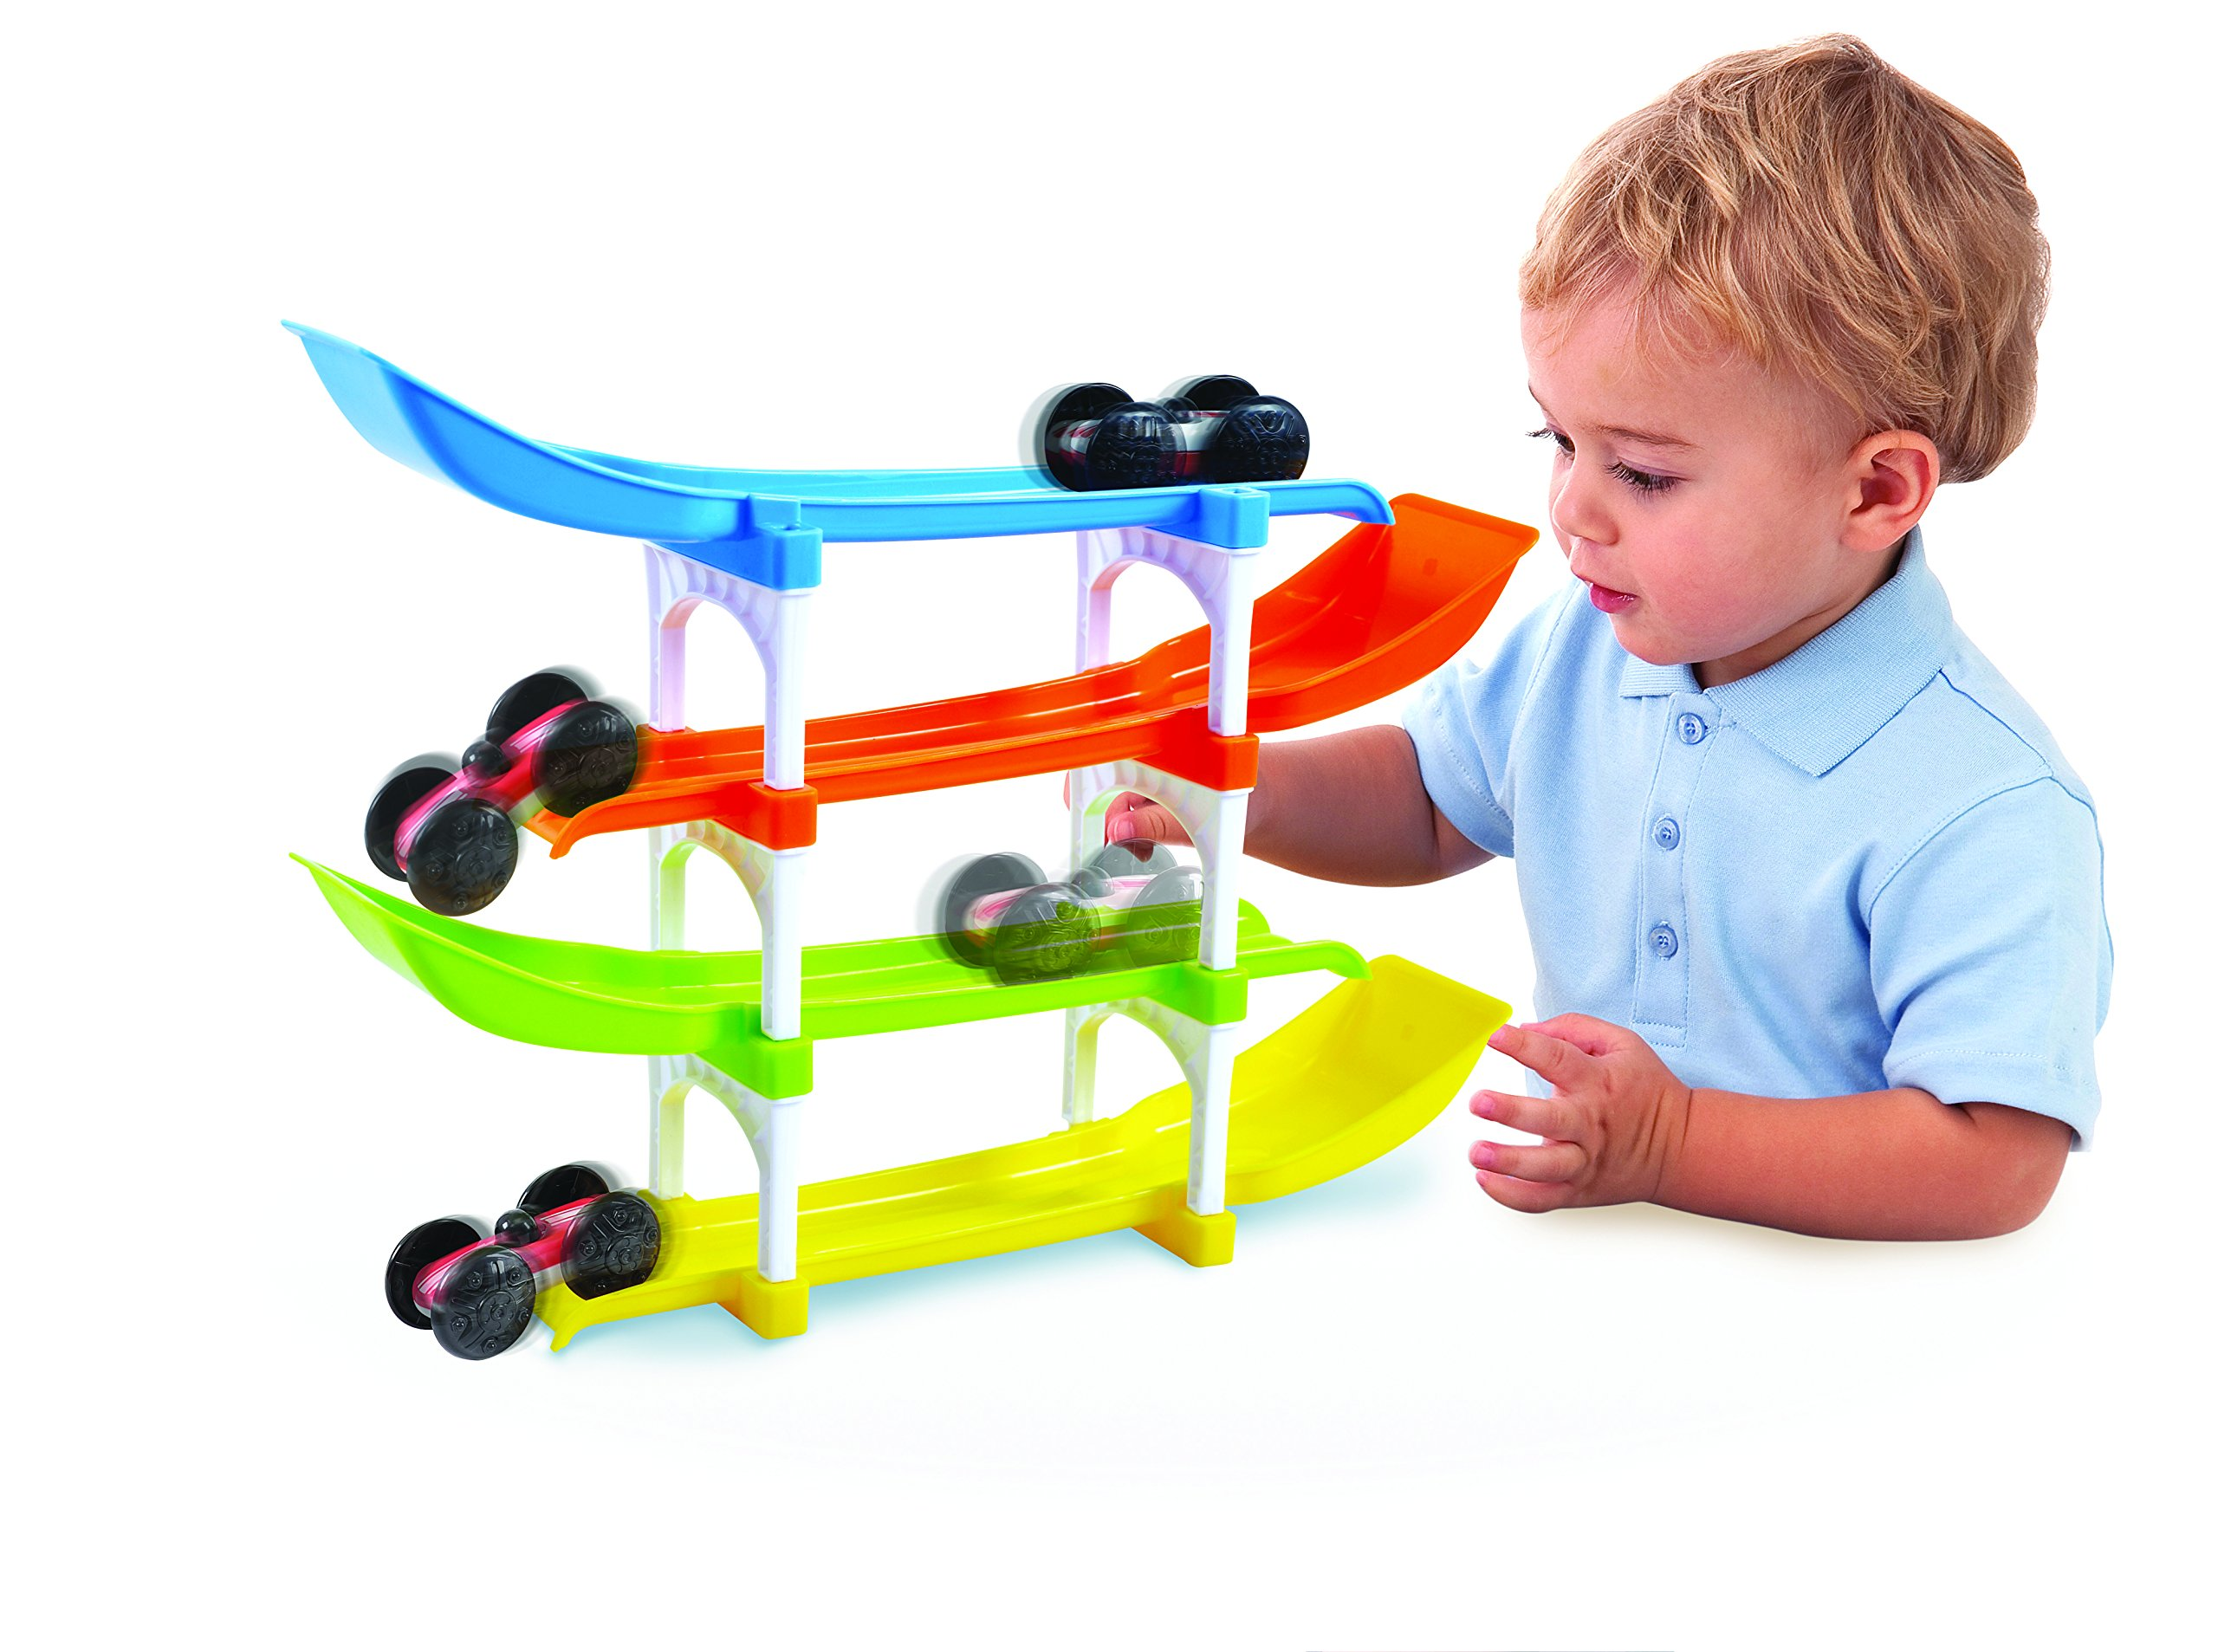 KidSource Flip and Go Racer - 4 Level Race Track and Ramp Car Toy for Toddlers Ages 2 Years Old and Up